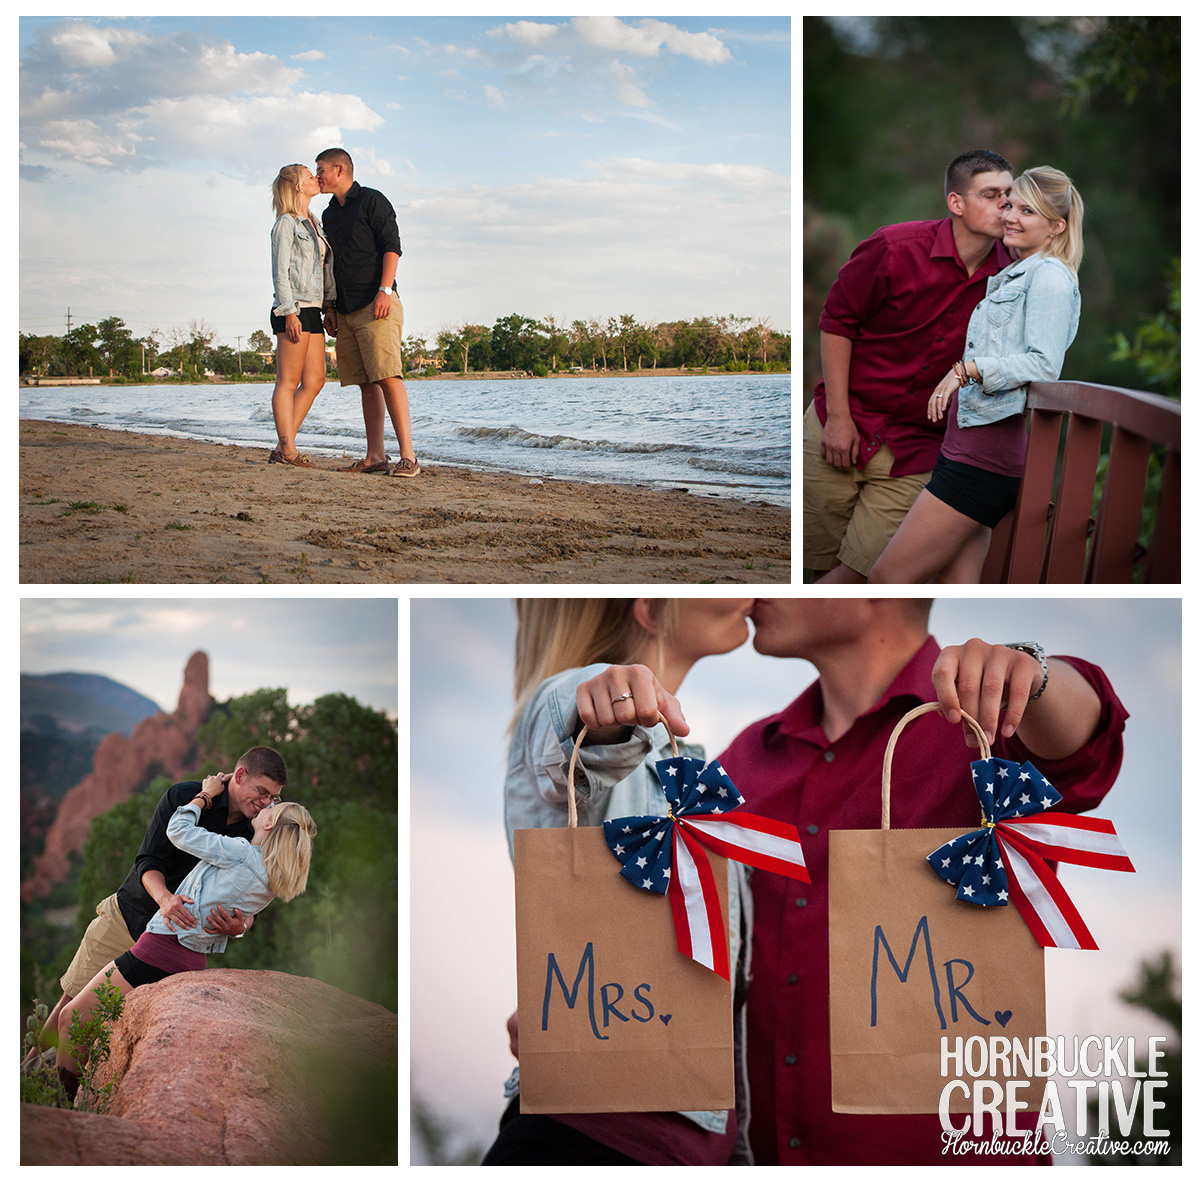 2013-07-08 - Colorado Springs Engagement Portraits 02